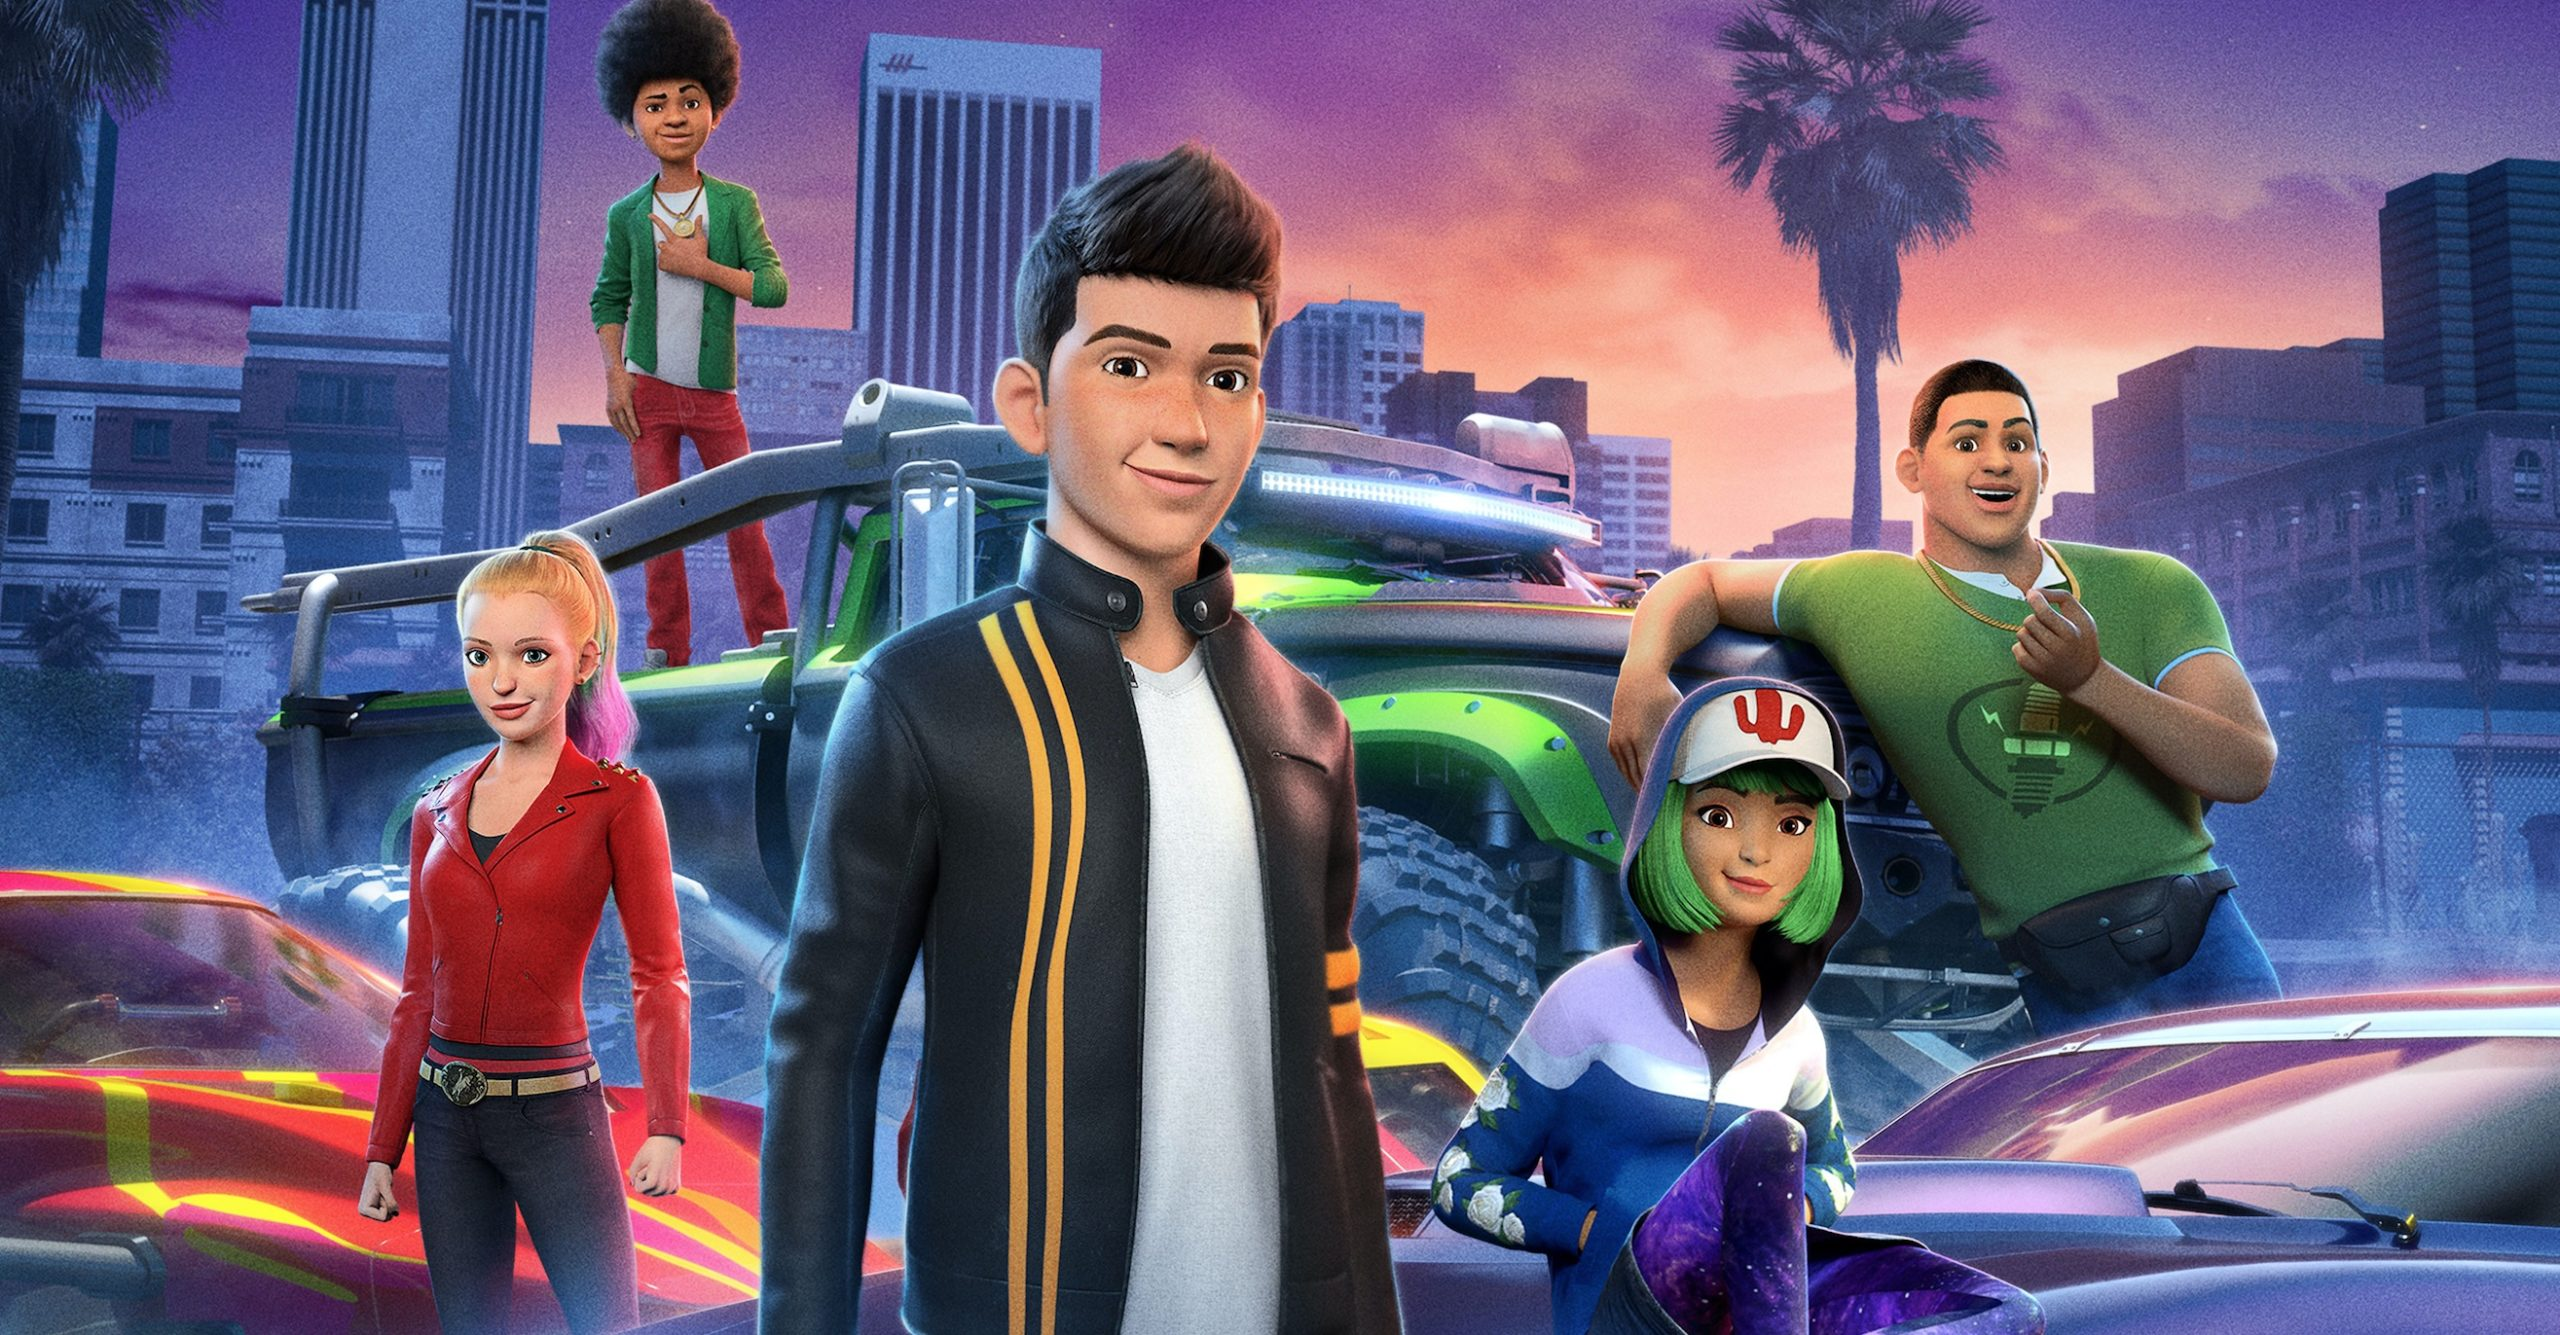 Fast and Furious: Spy Racers Review (Spoiler-Free) | Den of Geek